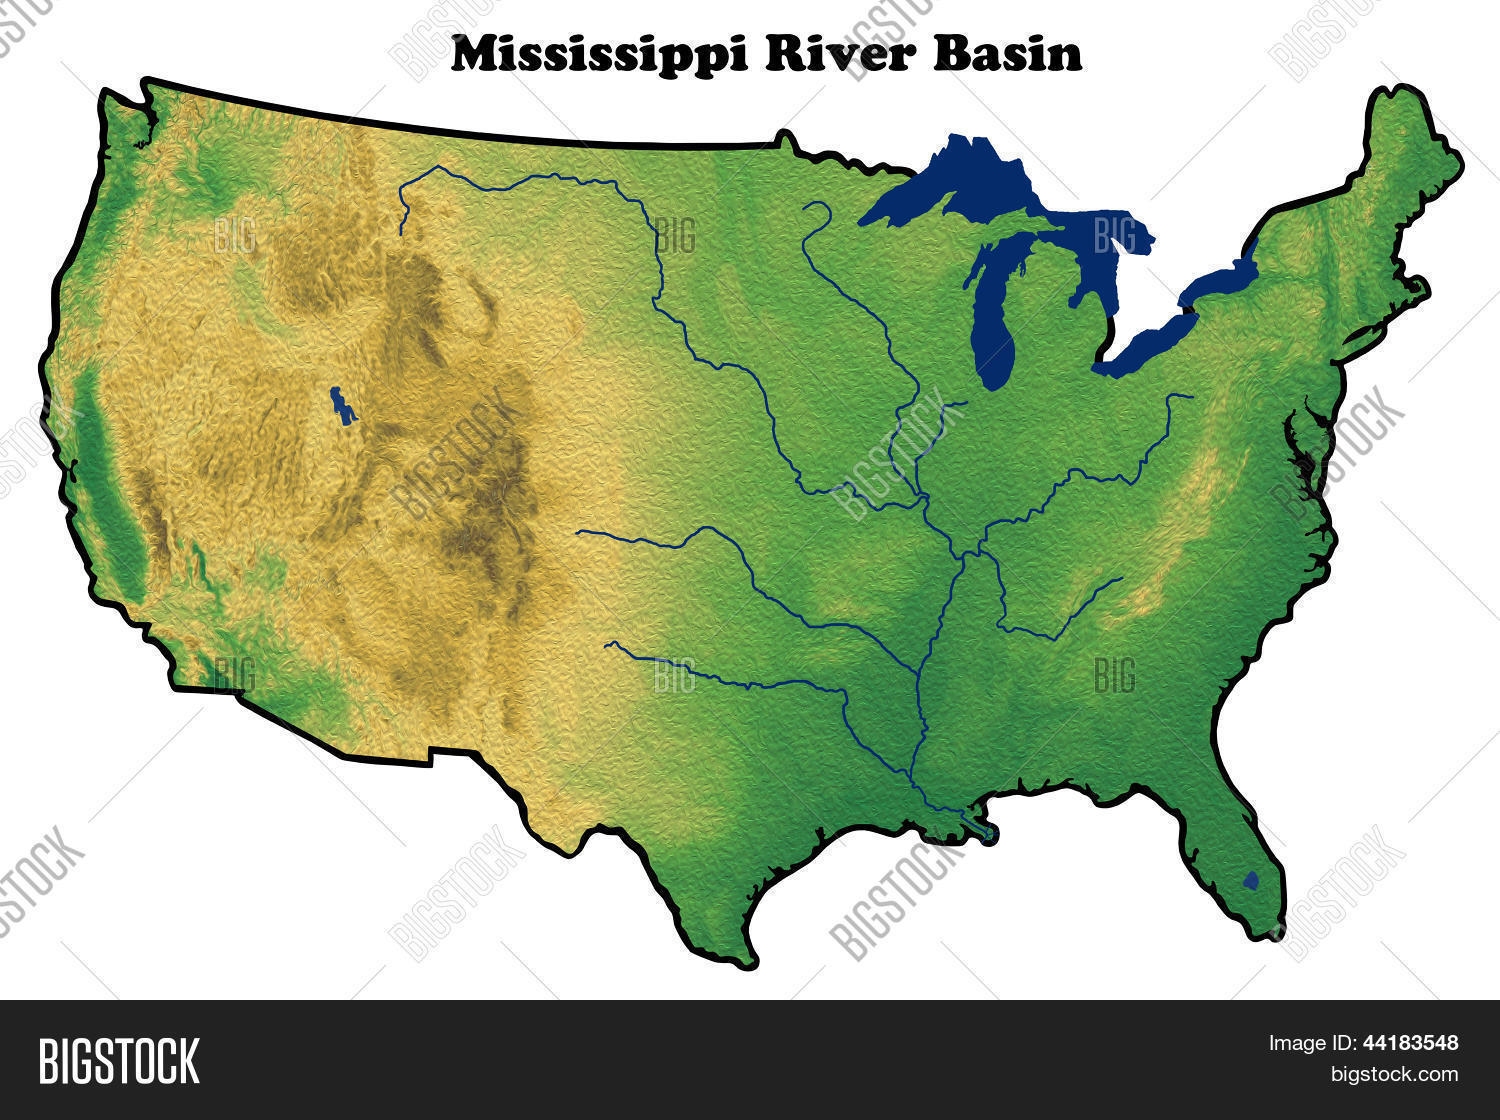 Physical Map Of United States Showing Mississippi River